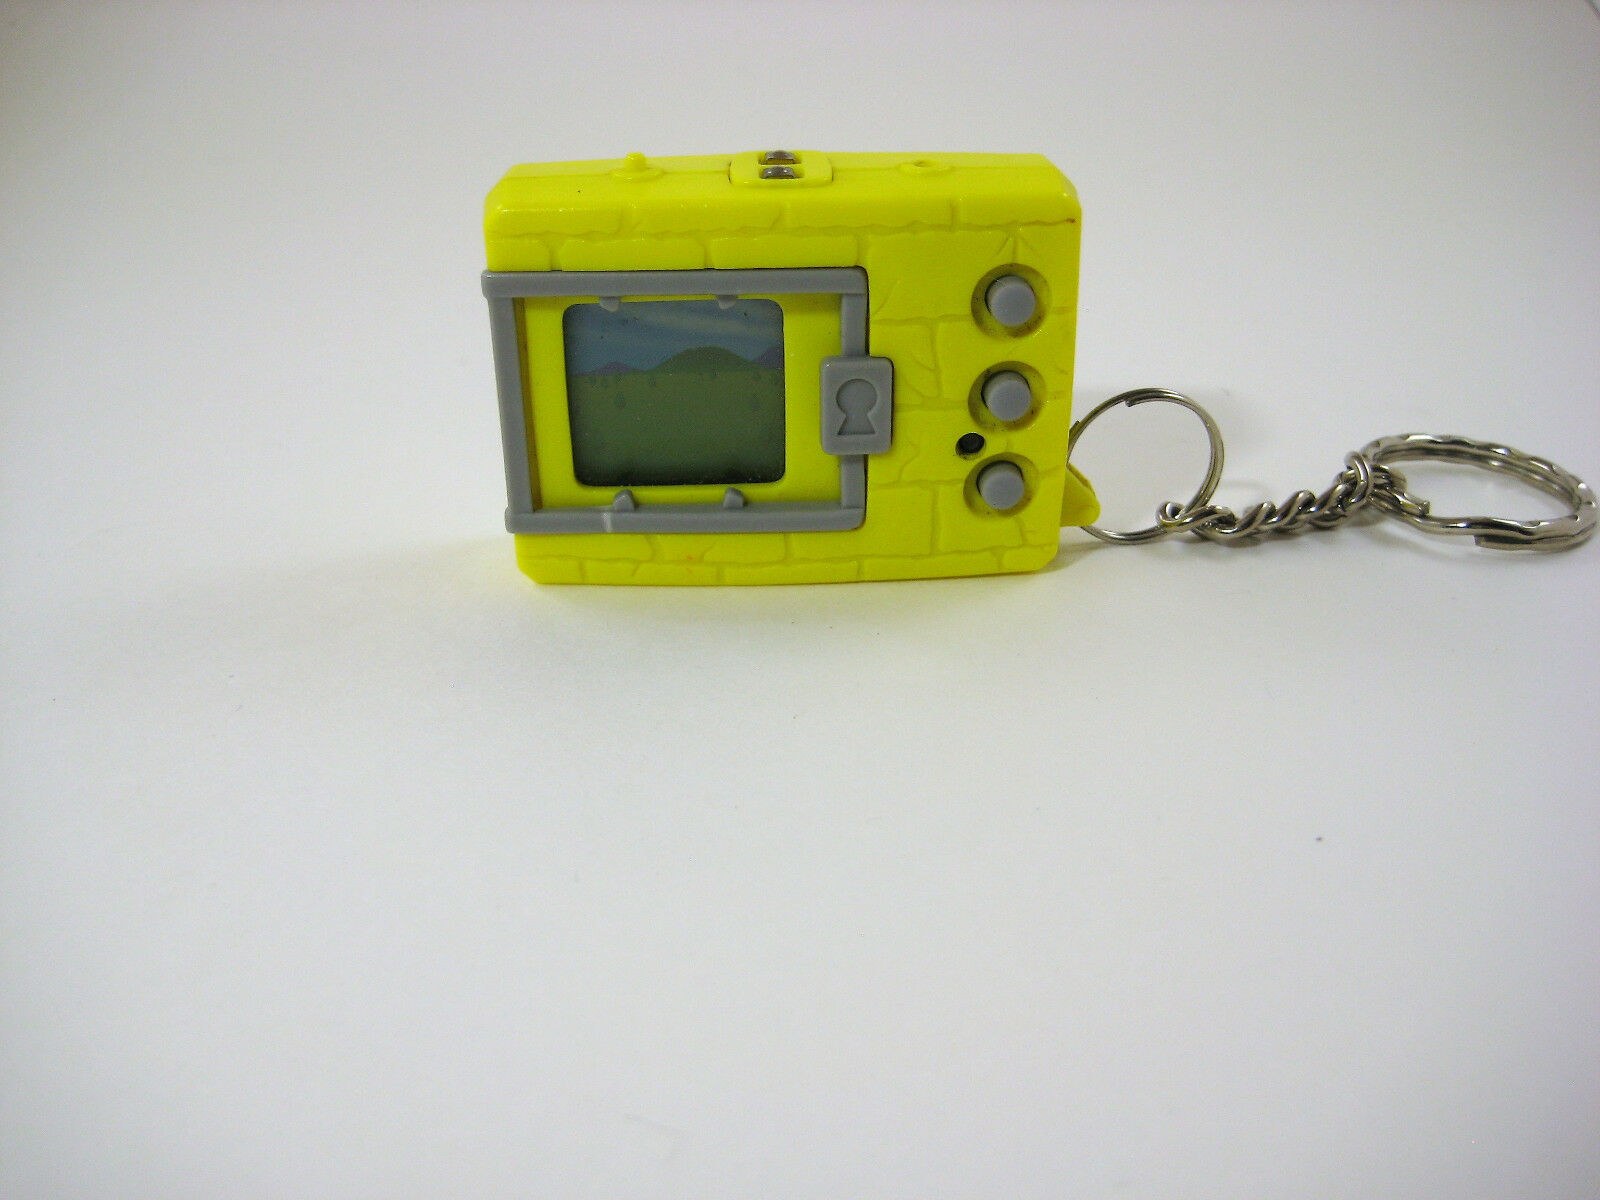 Bandai Digimon Digivice V1 Yellow With Instruction Instruction Instruction Manuals  Look  221c9e